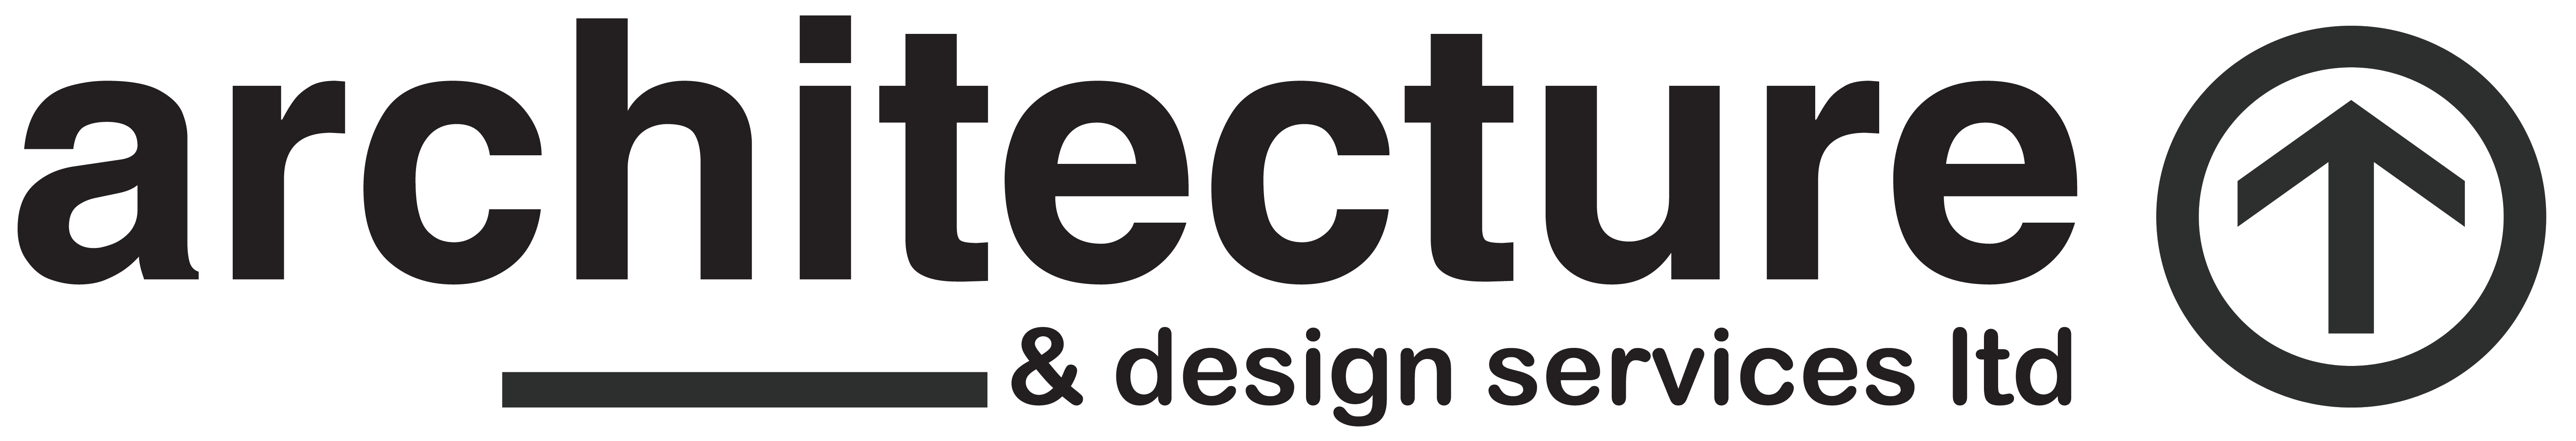 Architecture and design services logo